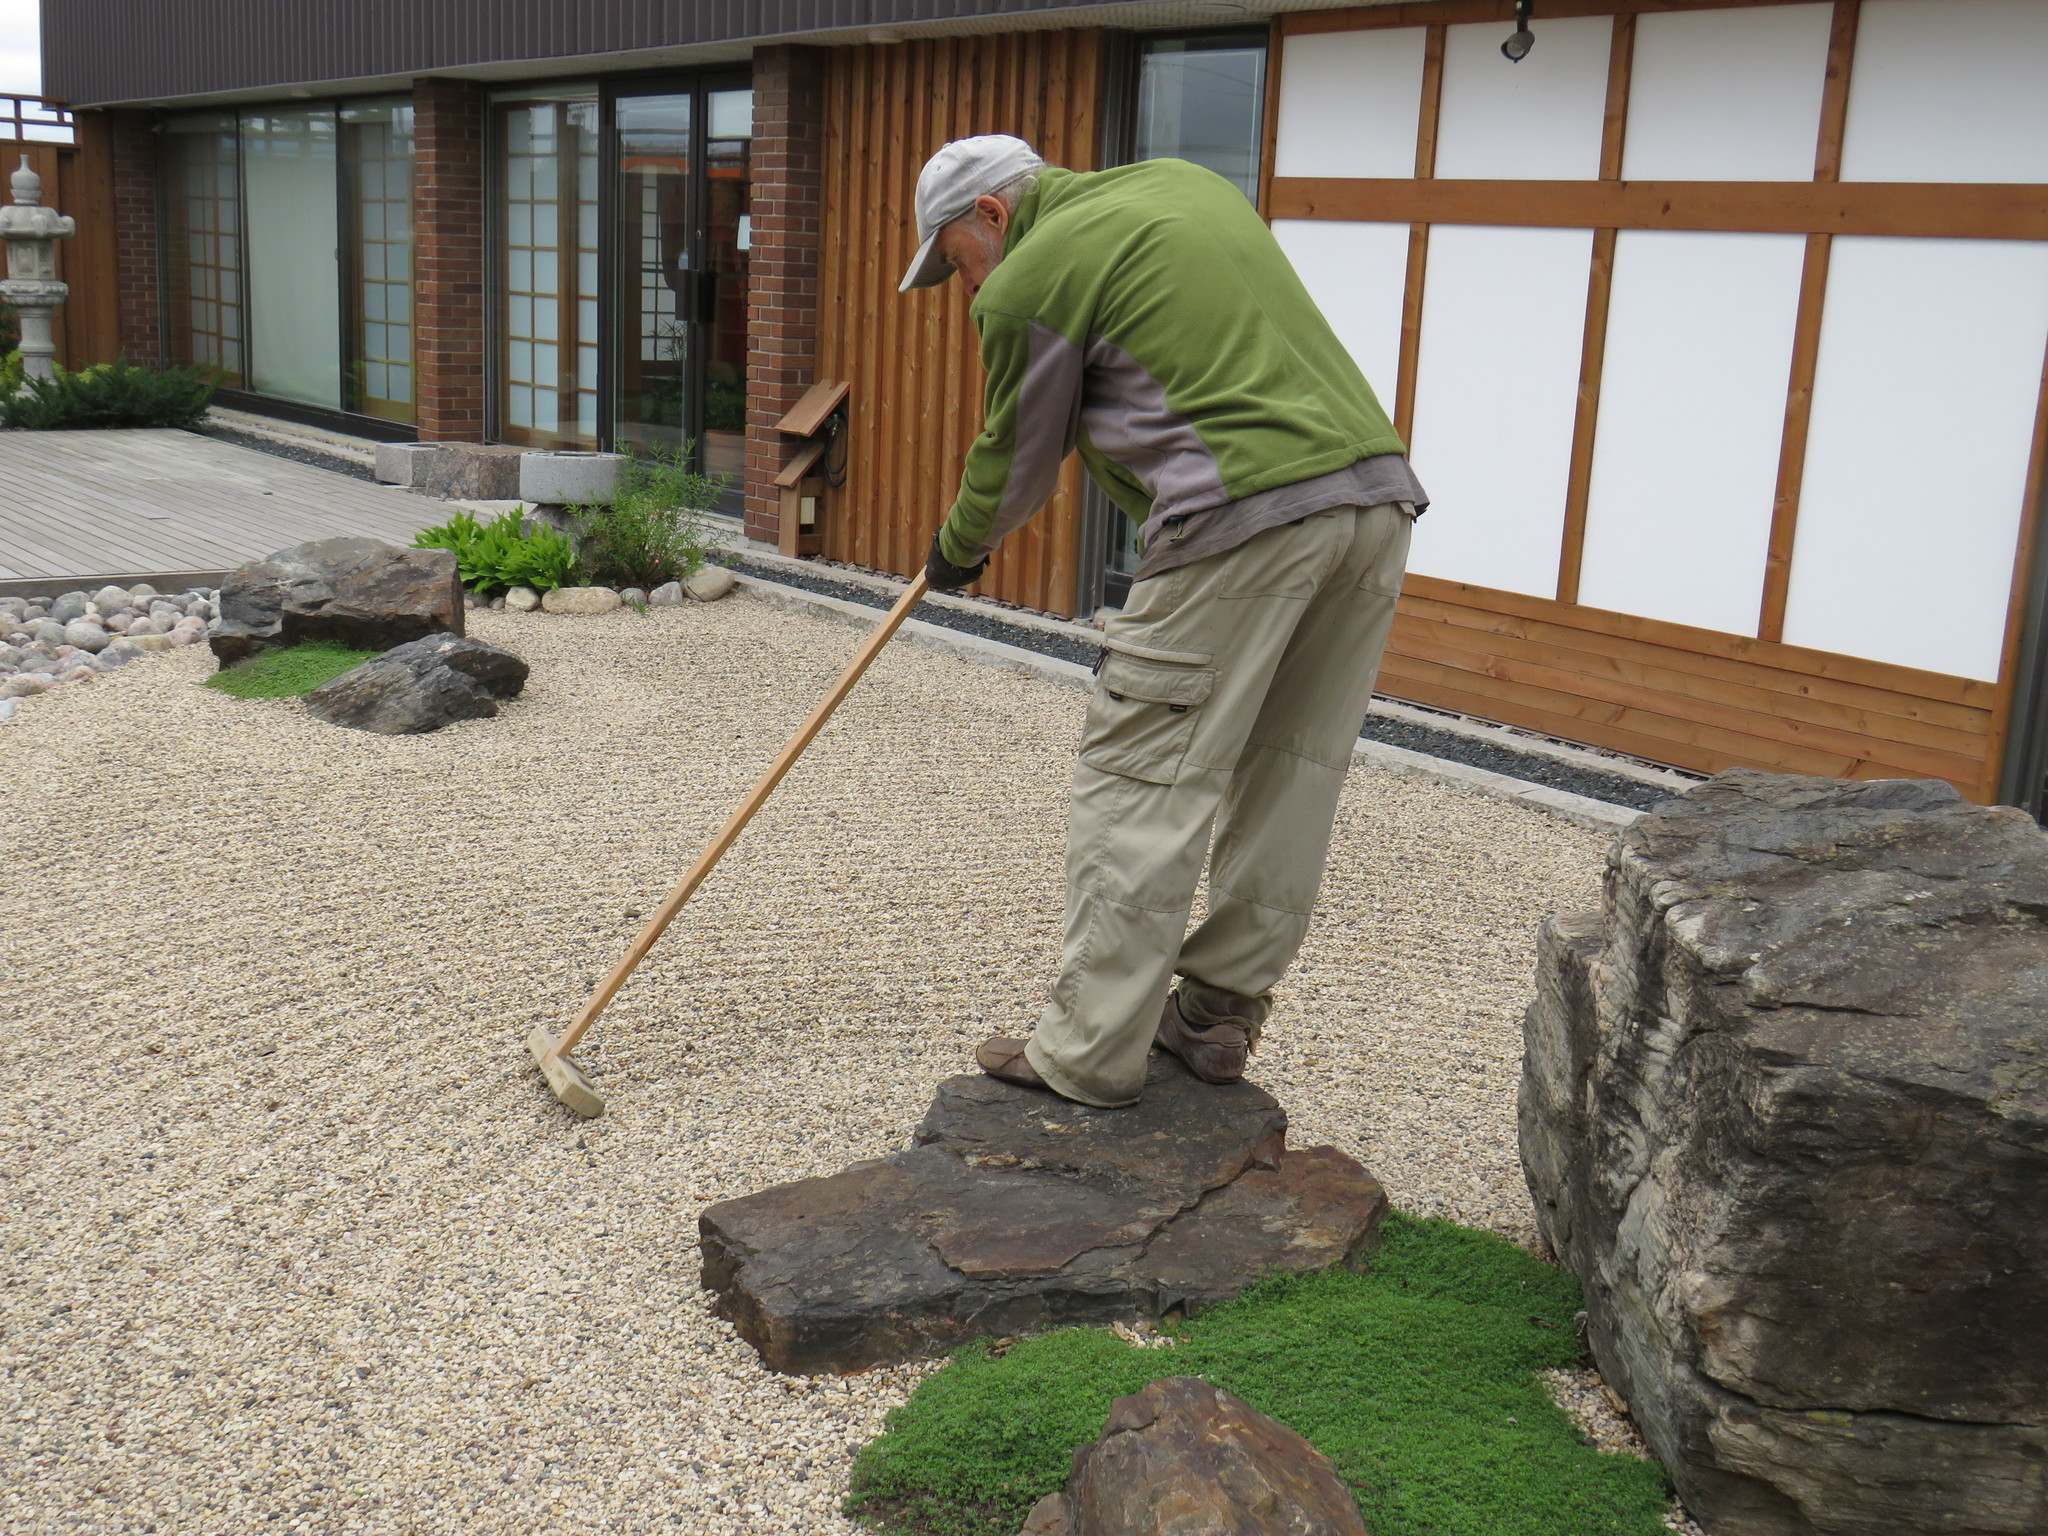 <p>Colleen Zacharias / Winnipeg Free Press</p><p>Raymond Normandeau, niwashi, uses a wooden rake to create meditative patterns in the gravel at the Japanese garden at 180 McPhillips St.</p>